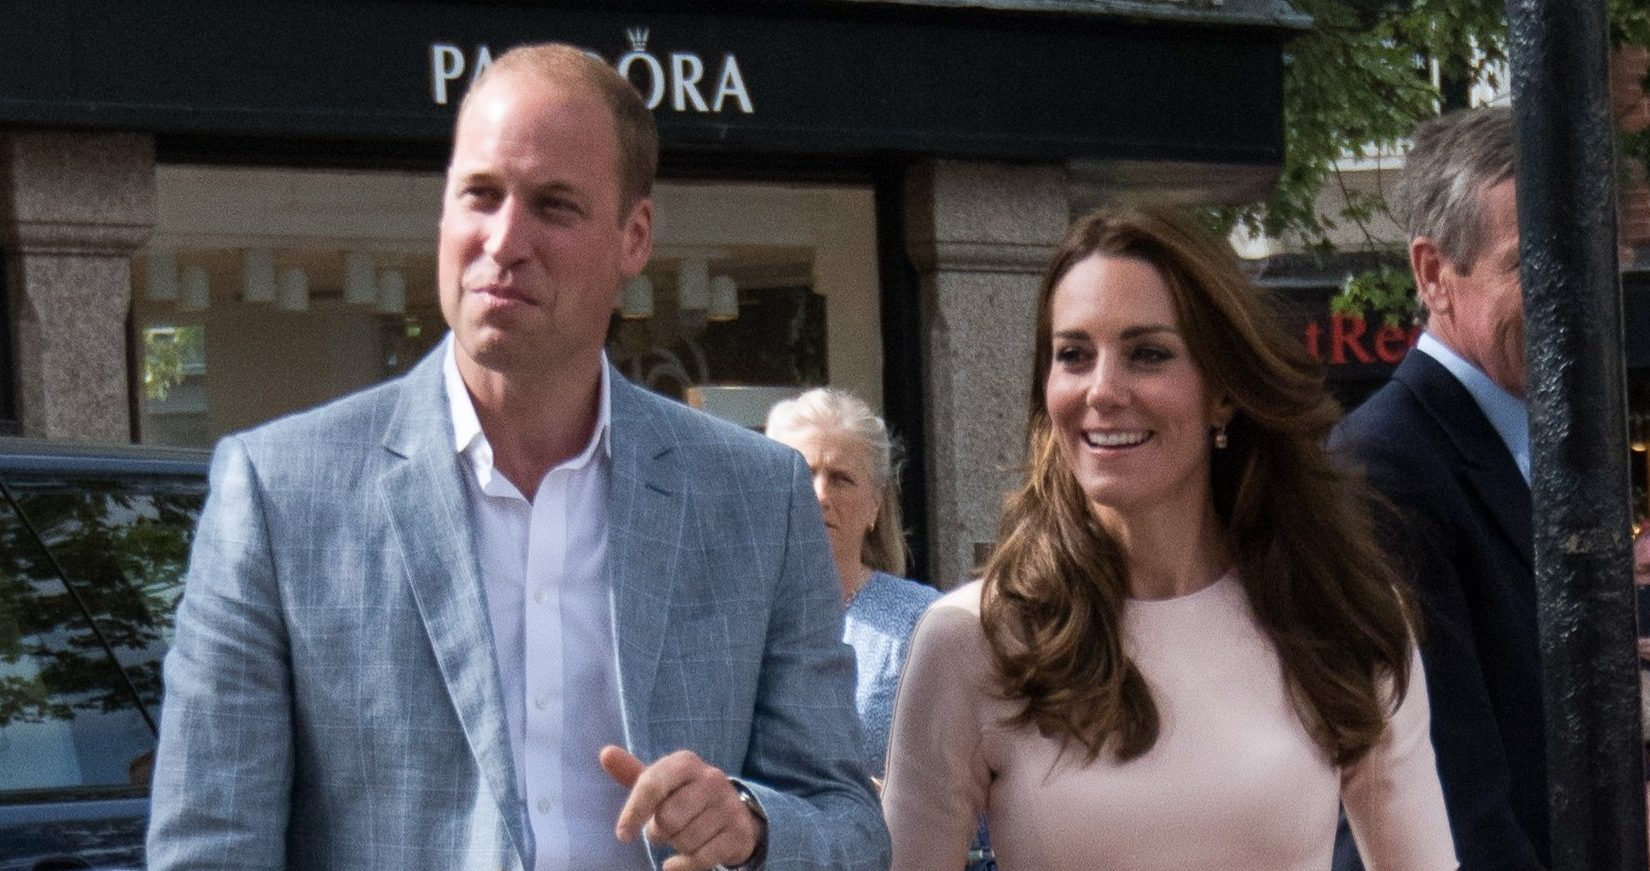 Bookies release odds-on favourite name as William and Kate welcome a son